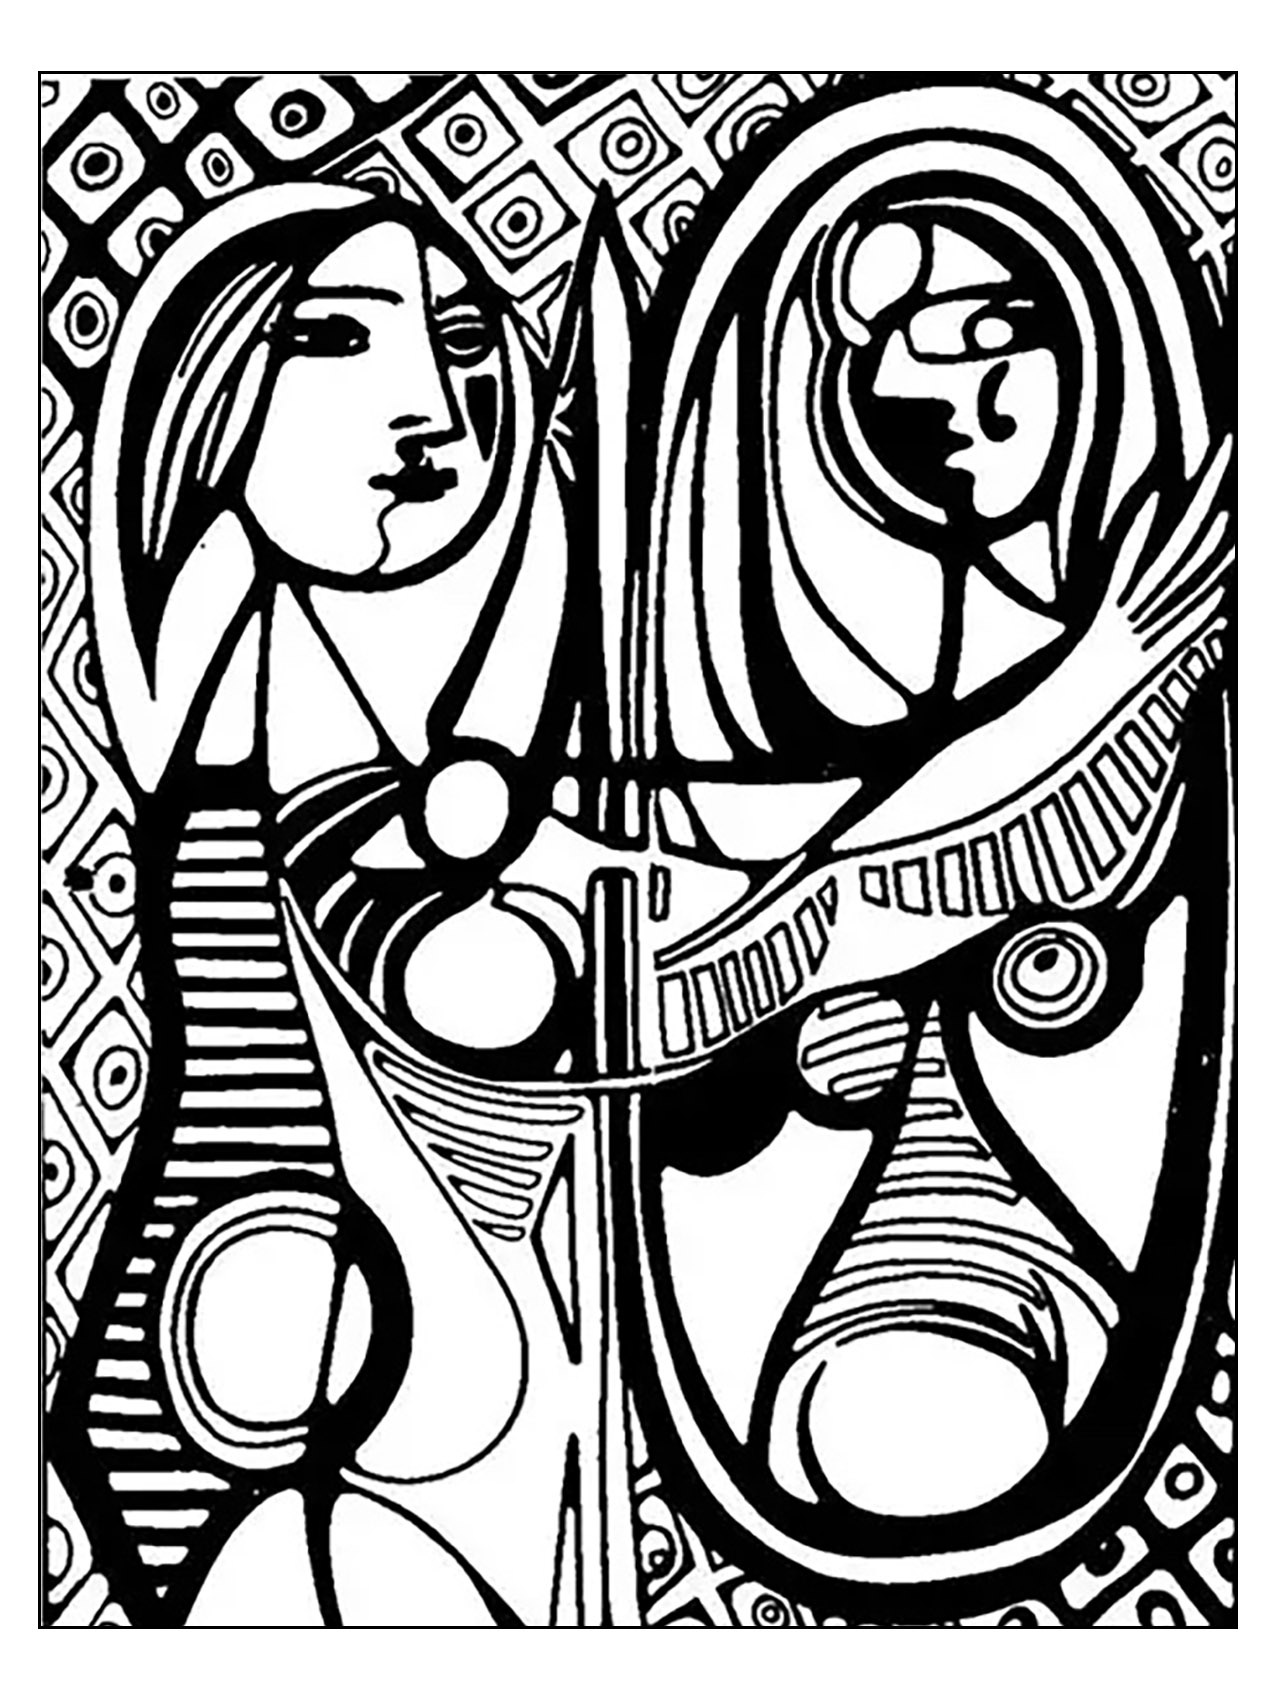 coloring page inspired by girl before a mirror by picasso 1932